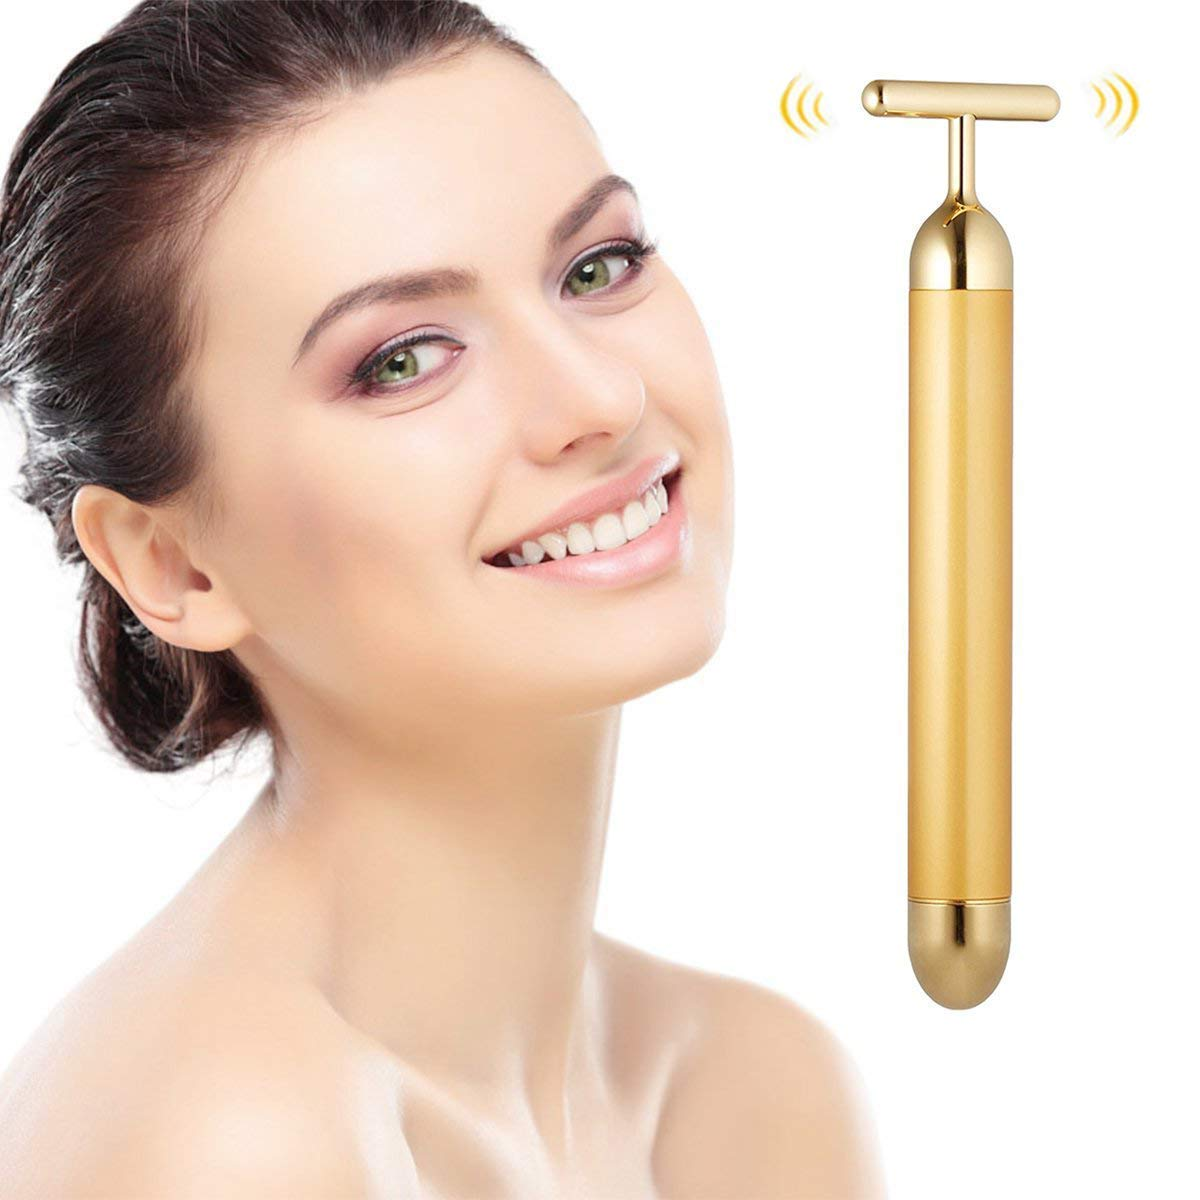 Beauty Bar 24k Golden Pulse Facial Face Massager, Electric T Shape Face Massage Tools Instant Face Lift Anti-Wrinkles Skin Tightening Face Firming